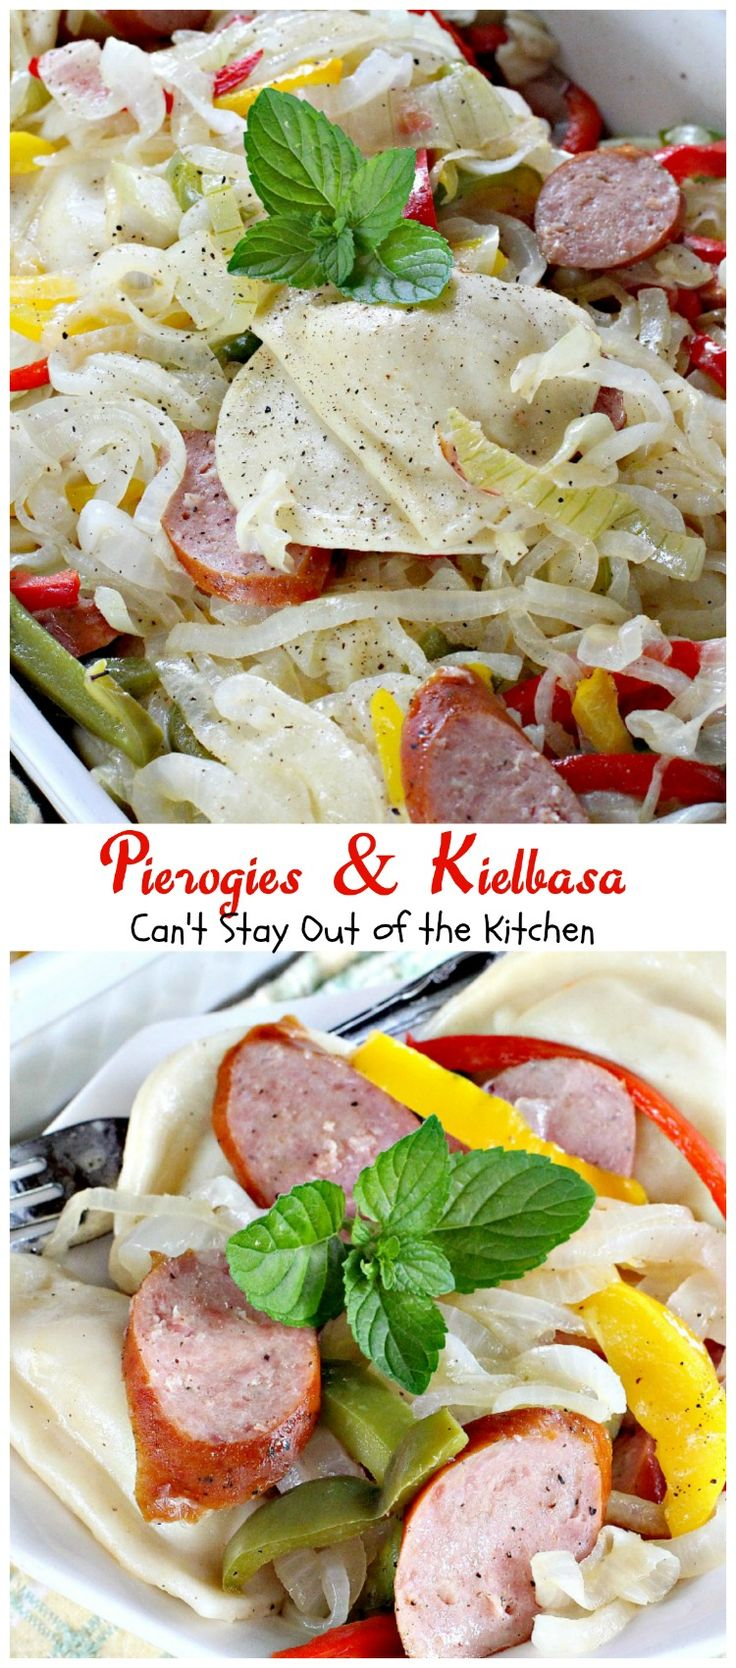 Pierogies & Kielbasa | Can't Stay Out of the Kitchen | delicious #Polish dish with #kielbasa #pierogies peppers and onions. #sausage